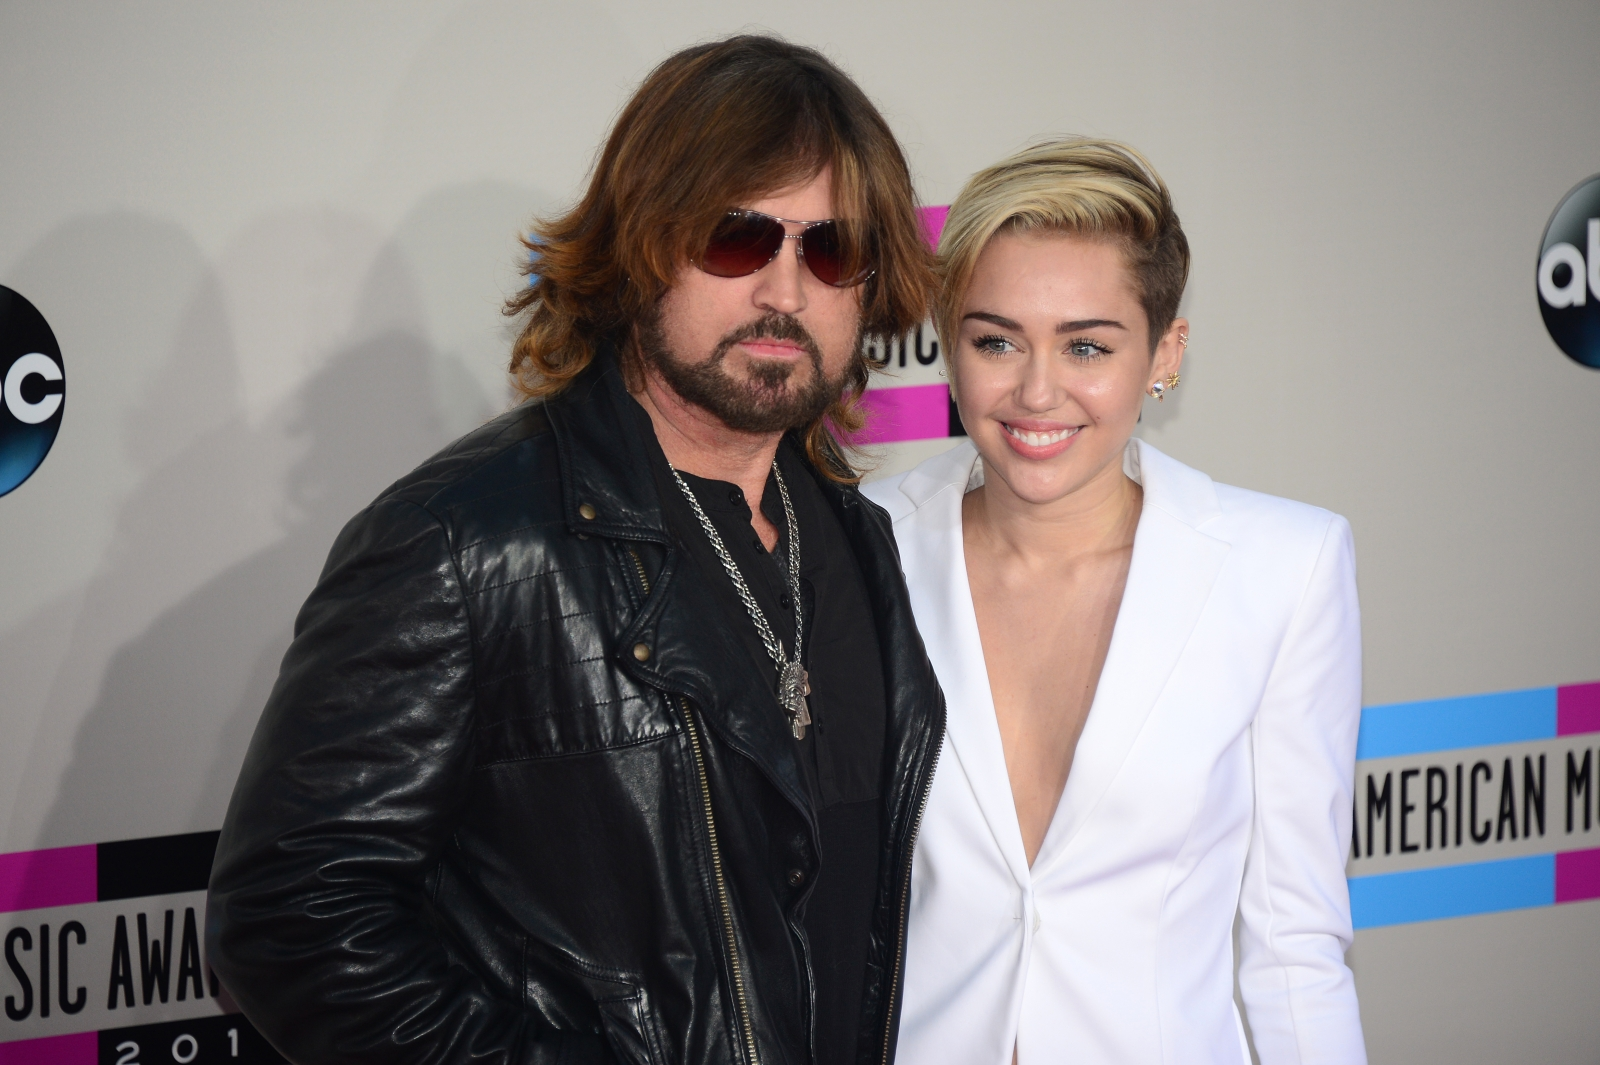 miley cyrus and her dad relationship